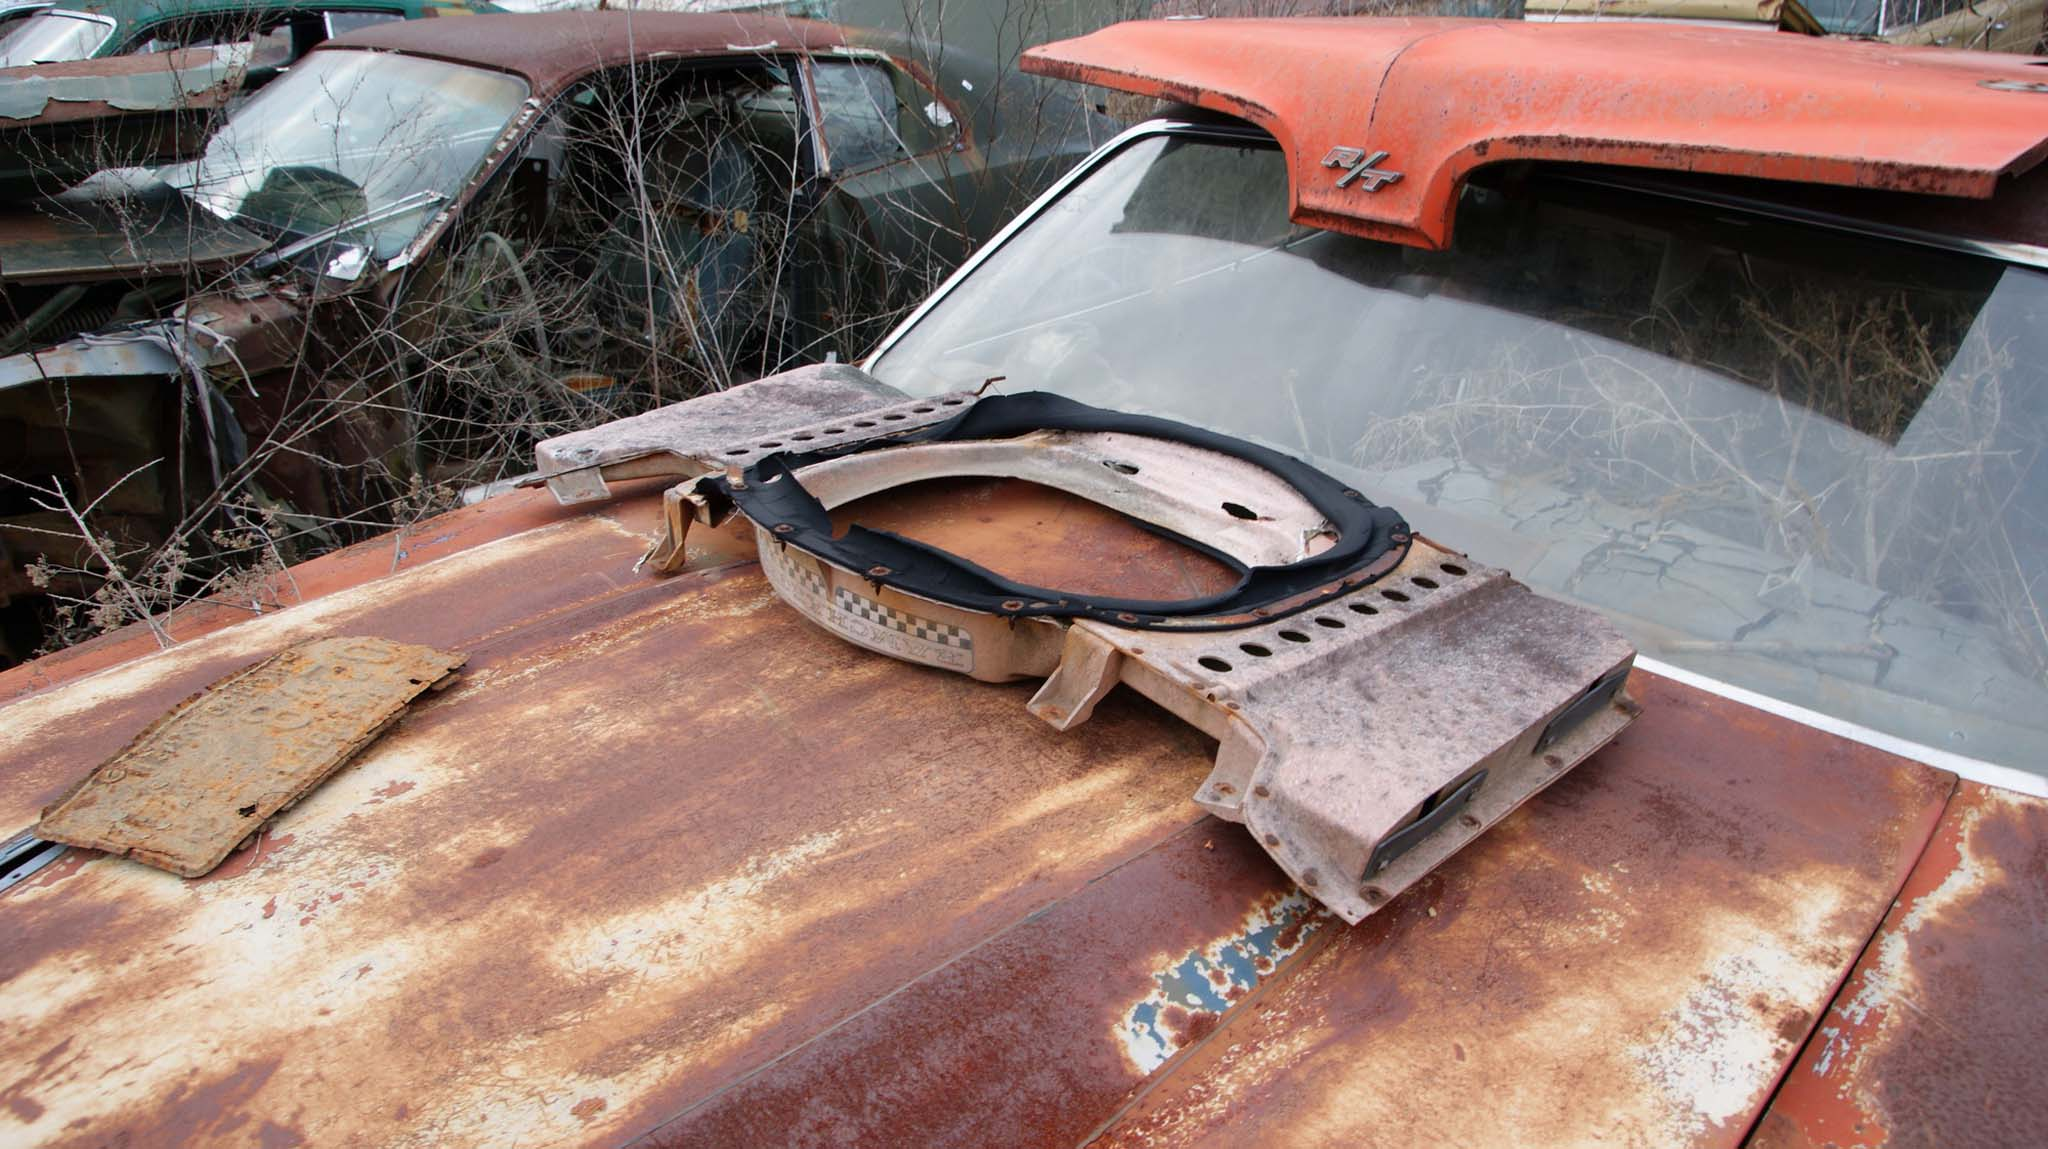 Not often you come across a near complete 1970 Coronet R/T Hood and Ram Charger air grabber setup just lying around.